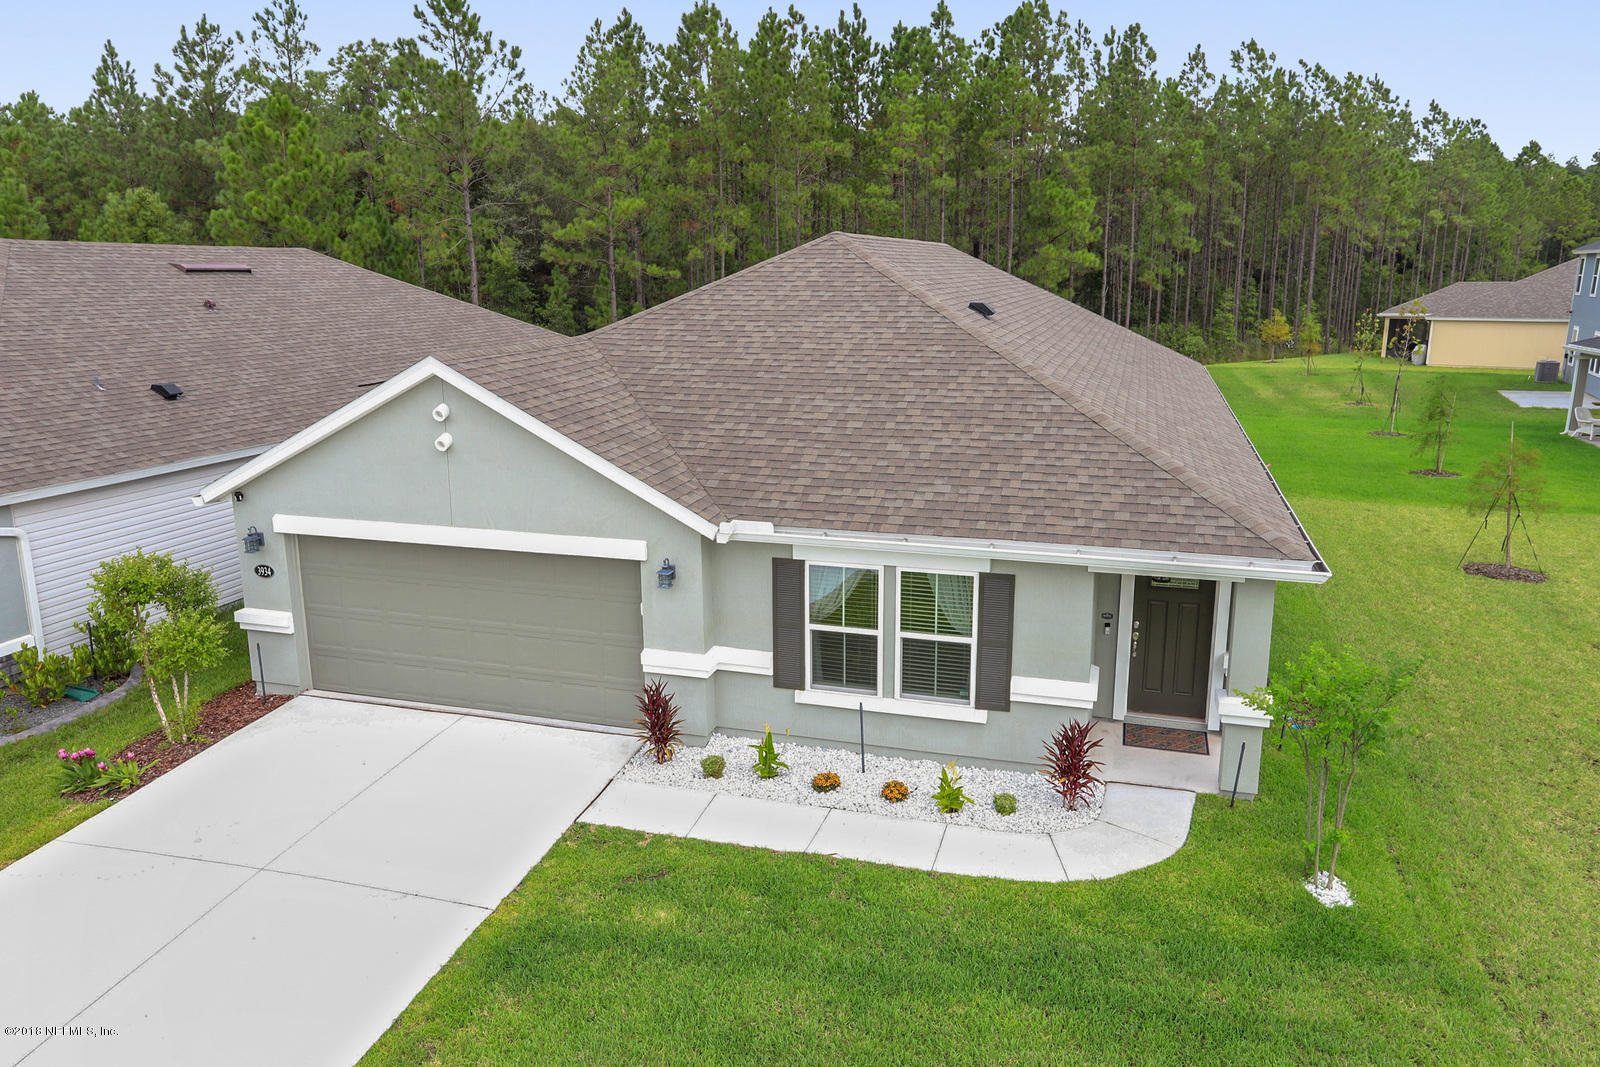 3934 CONNECTICUT, ORANGE PARK, FLORIDA 32065, 4 Bedrooms Bedrooms, ,2 BathroomsBathrooms,Residential - single family,For sale,CONNECTICUT,961930